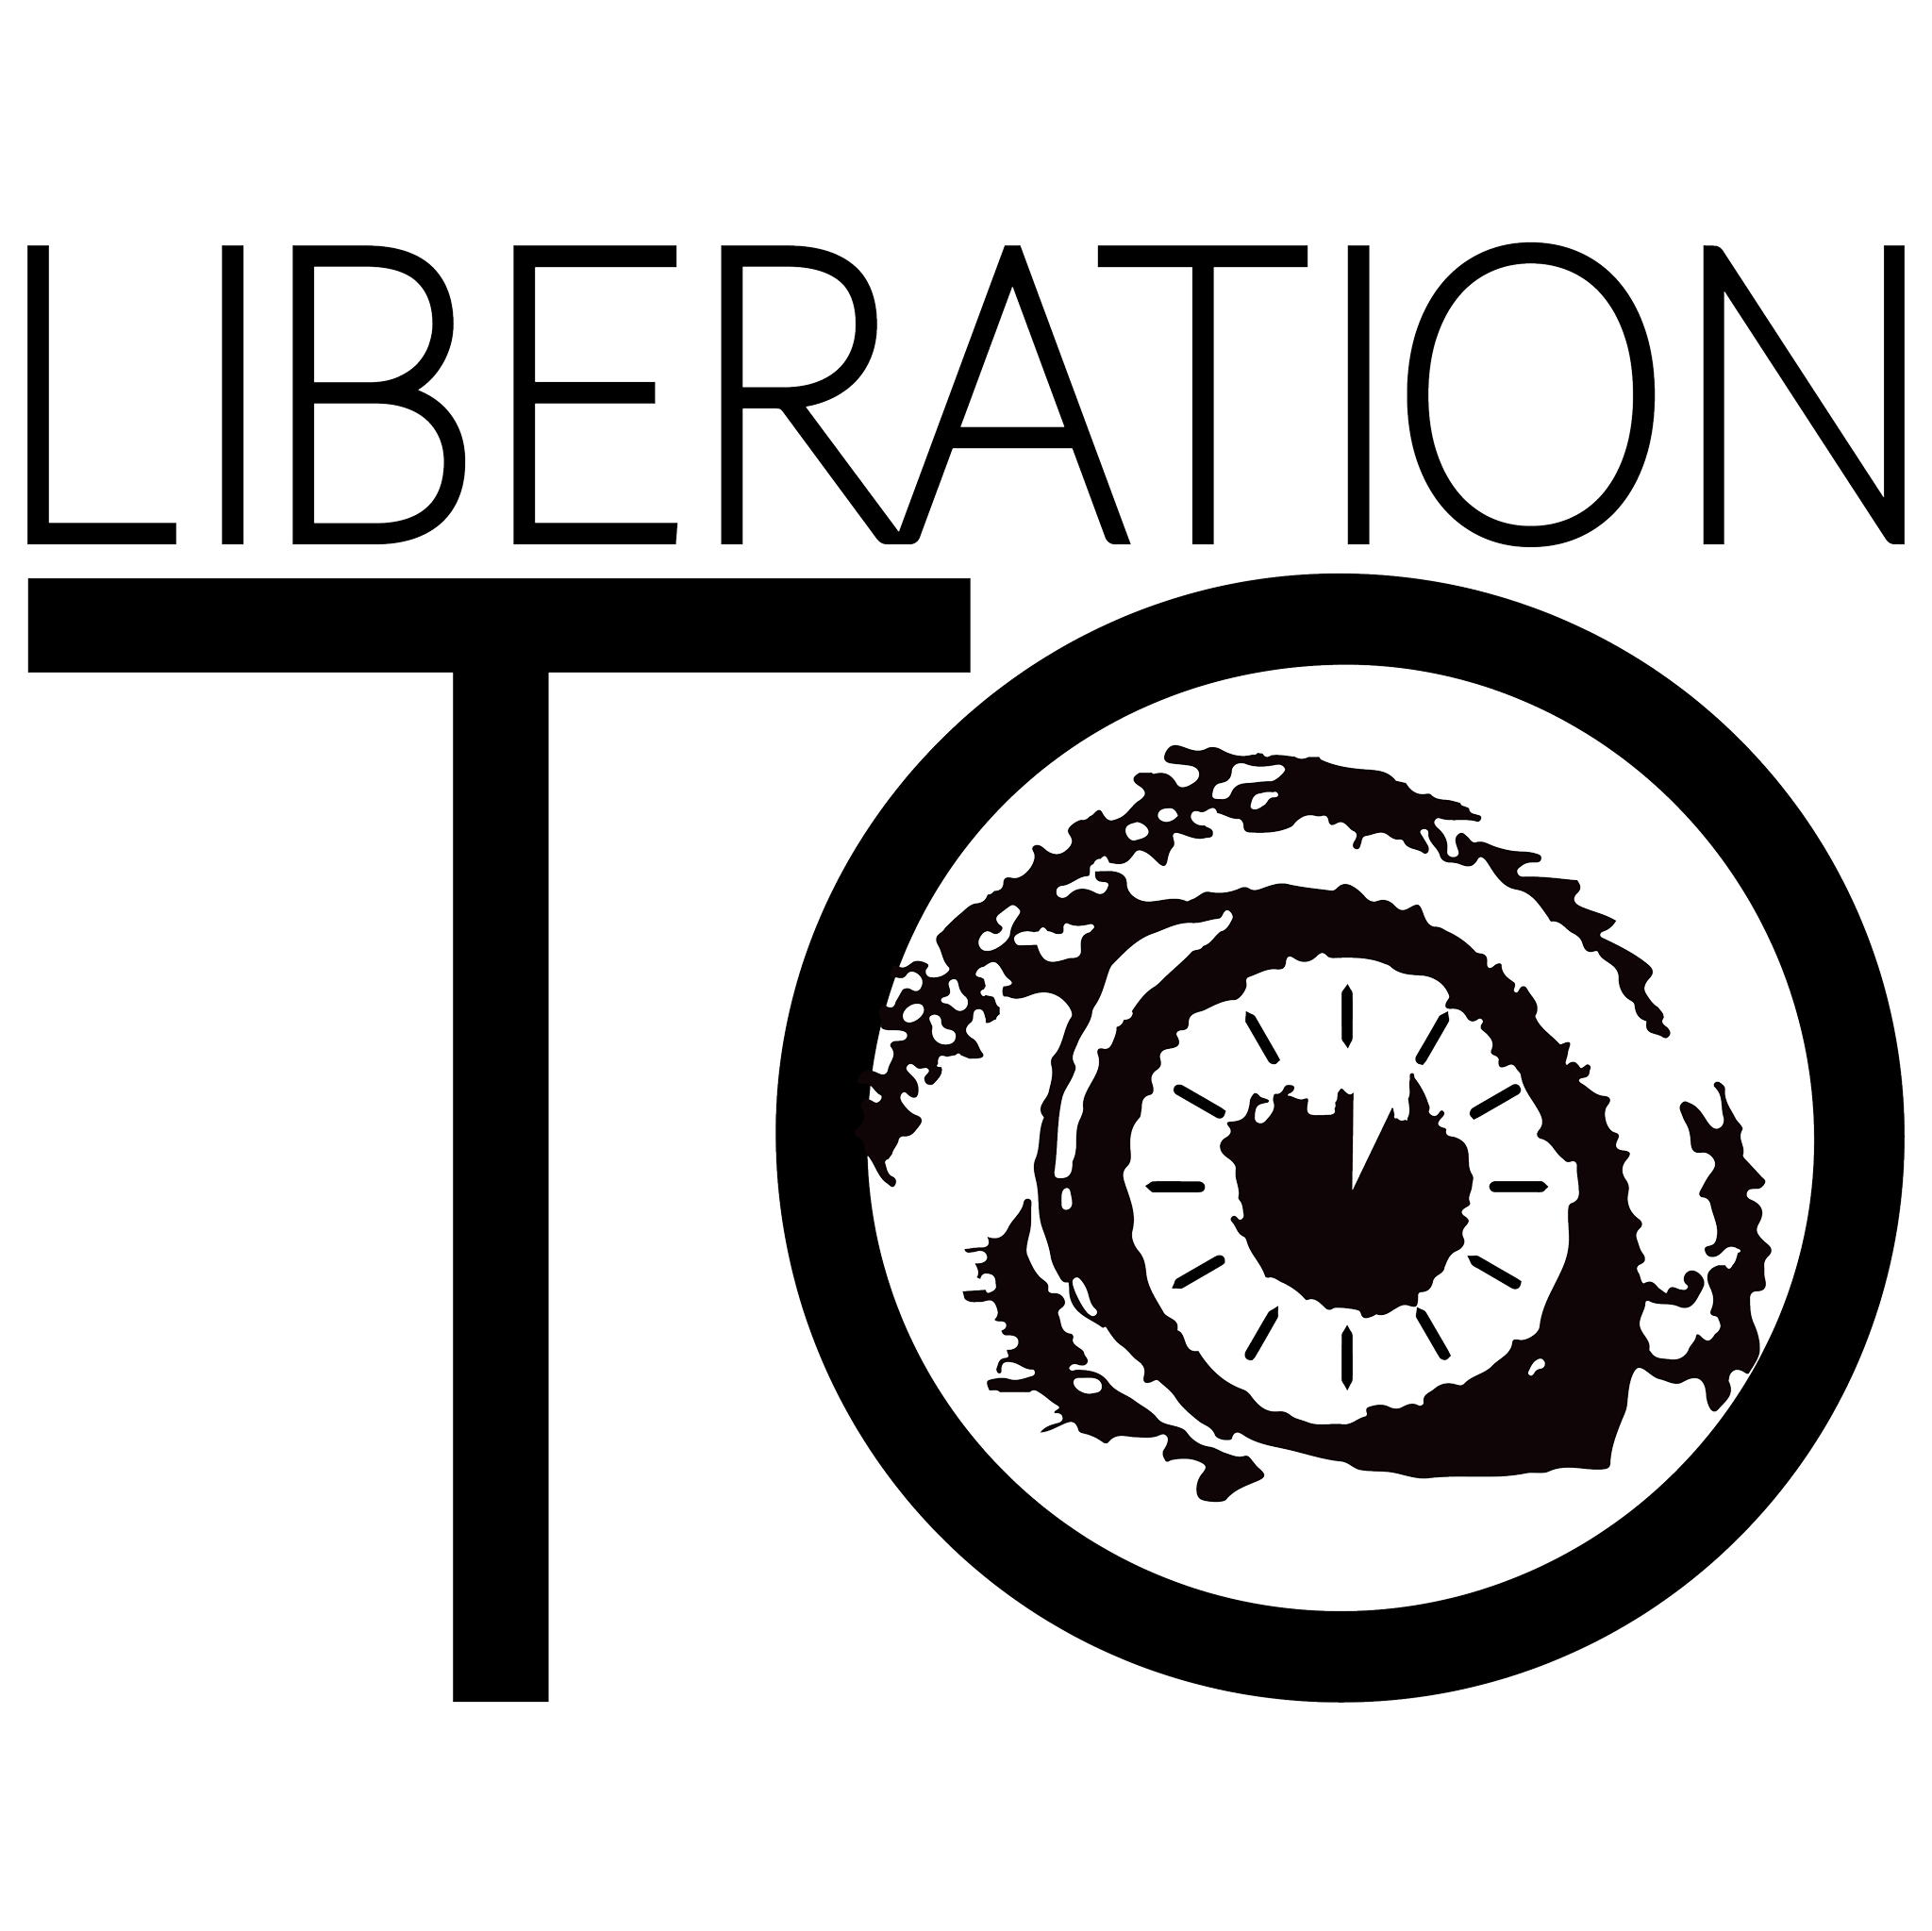 Connect With Us - liberation totoronto pig savedirect action everywhere torontoAnonymous for the voicelessTHE SAVE MOVEMENT ANIMAL RIGHTS TORONTOG.R.A.S.S.questions? cONTACT US AT INFO@LIBERATIONTO.COM